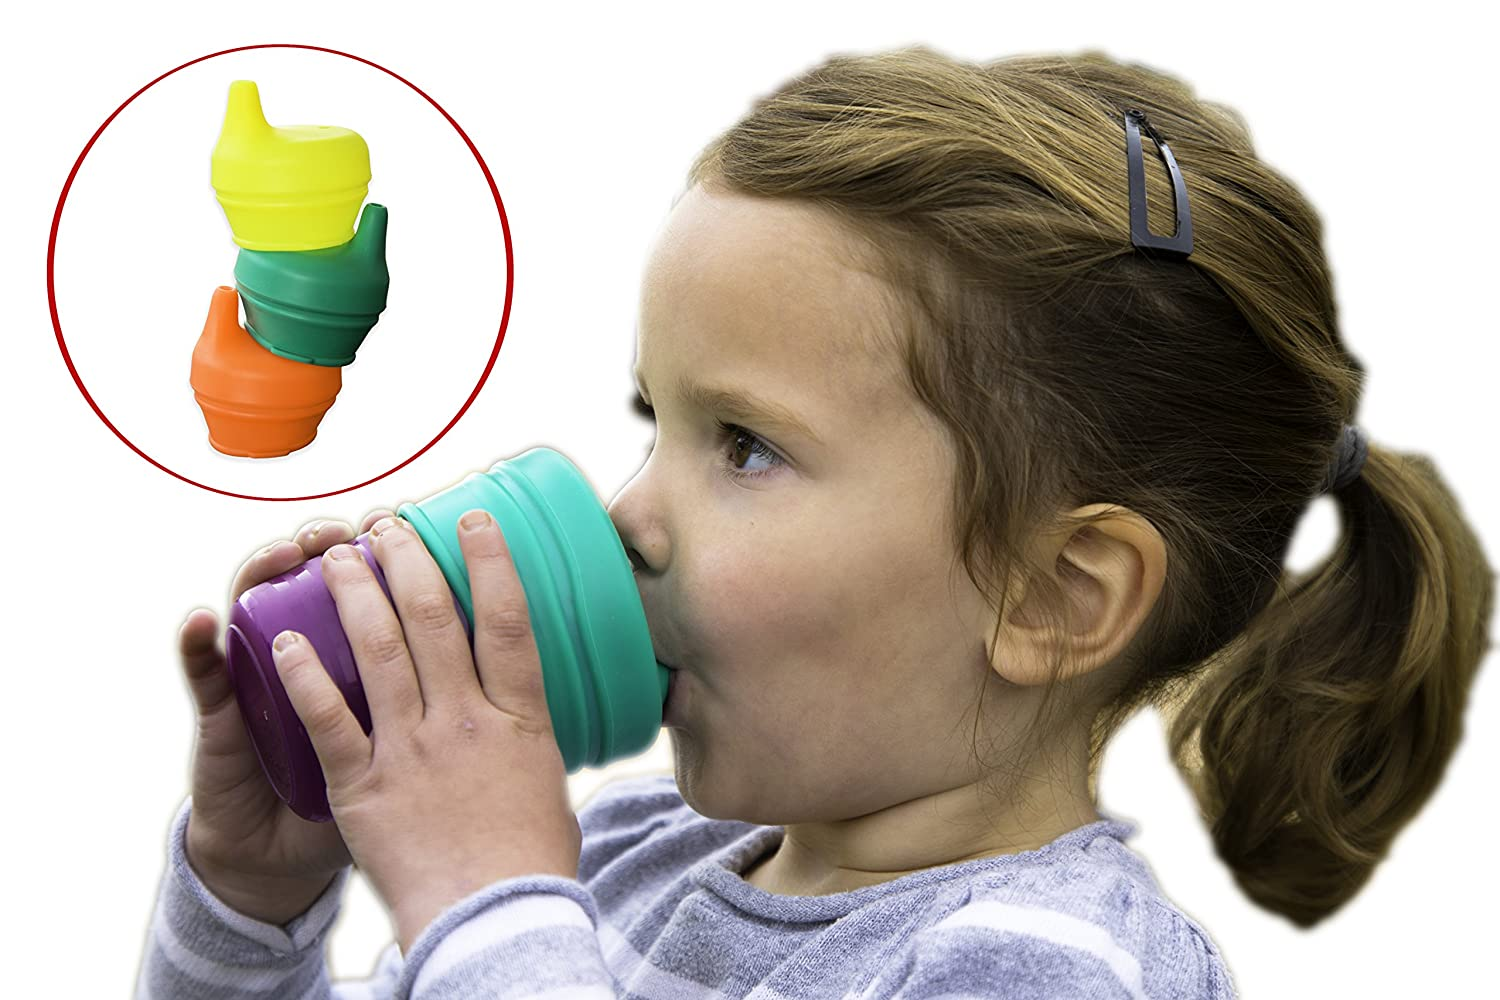 O-Sip! Silicone Sippy Lids (Pack of 3), Converts any Cup or Glass to a Sippy Cup, Makes Drinks Spillproof, Reusable, Durable (Red,Green,Blue) Modfamily.com SIPRGBFBA